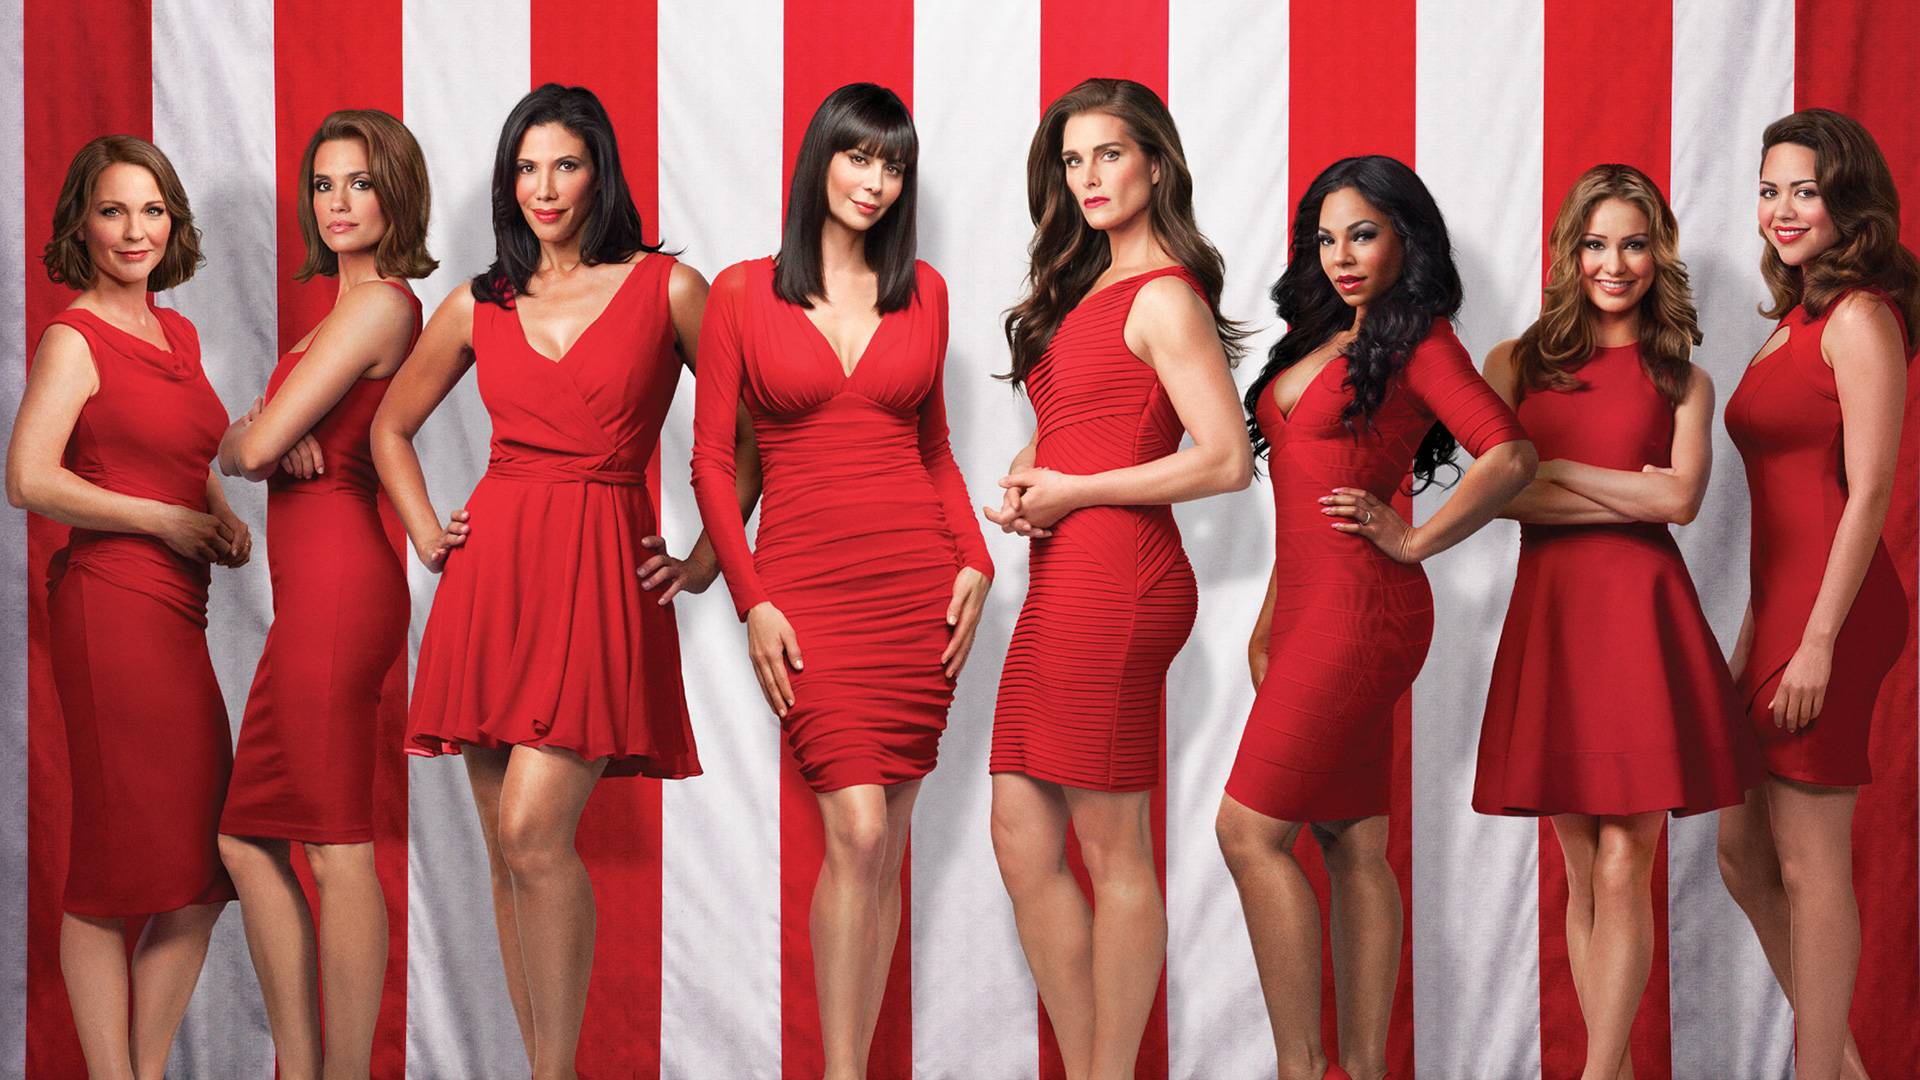 Alyssa Diaz Hot army wives: where is the cast now? | page 11 of 15